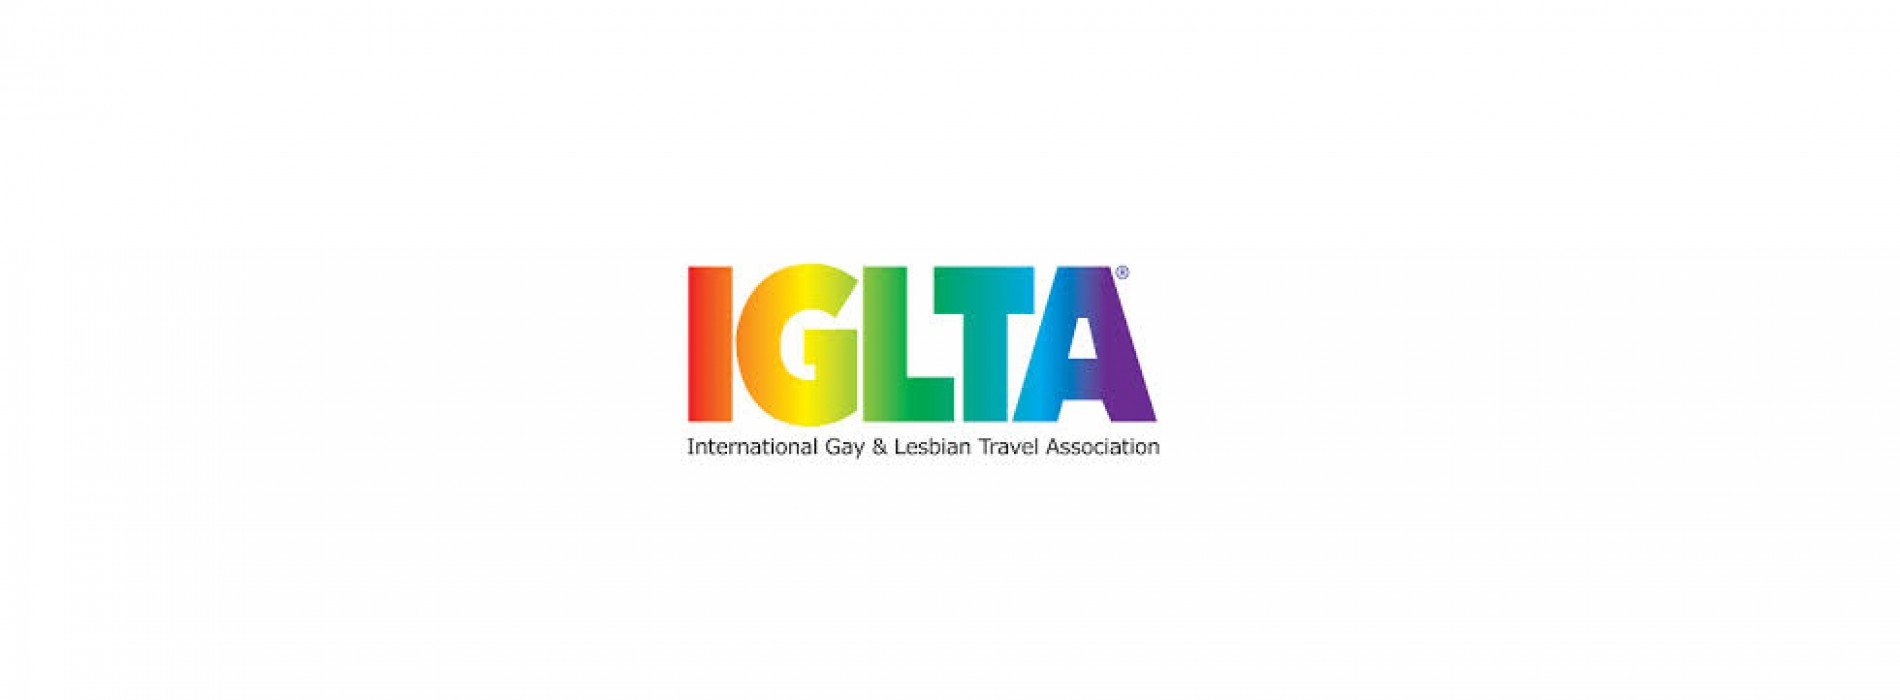 LGBT tourism in Argentina was Awarded in the United States